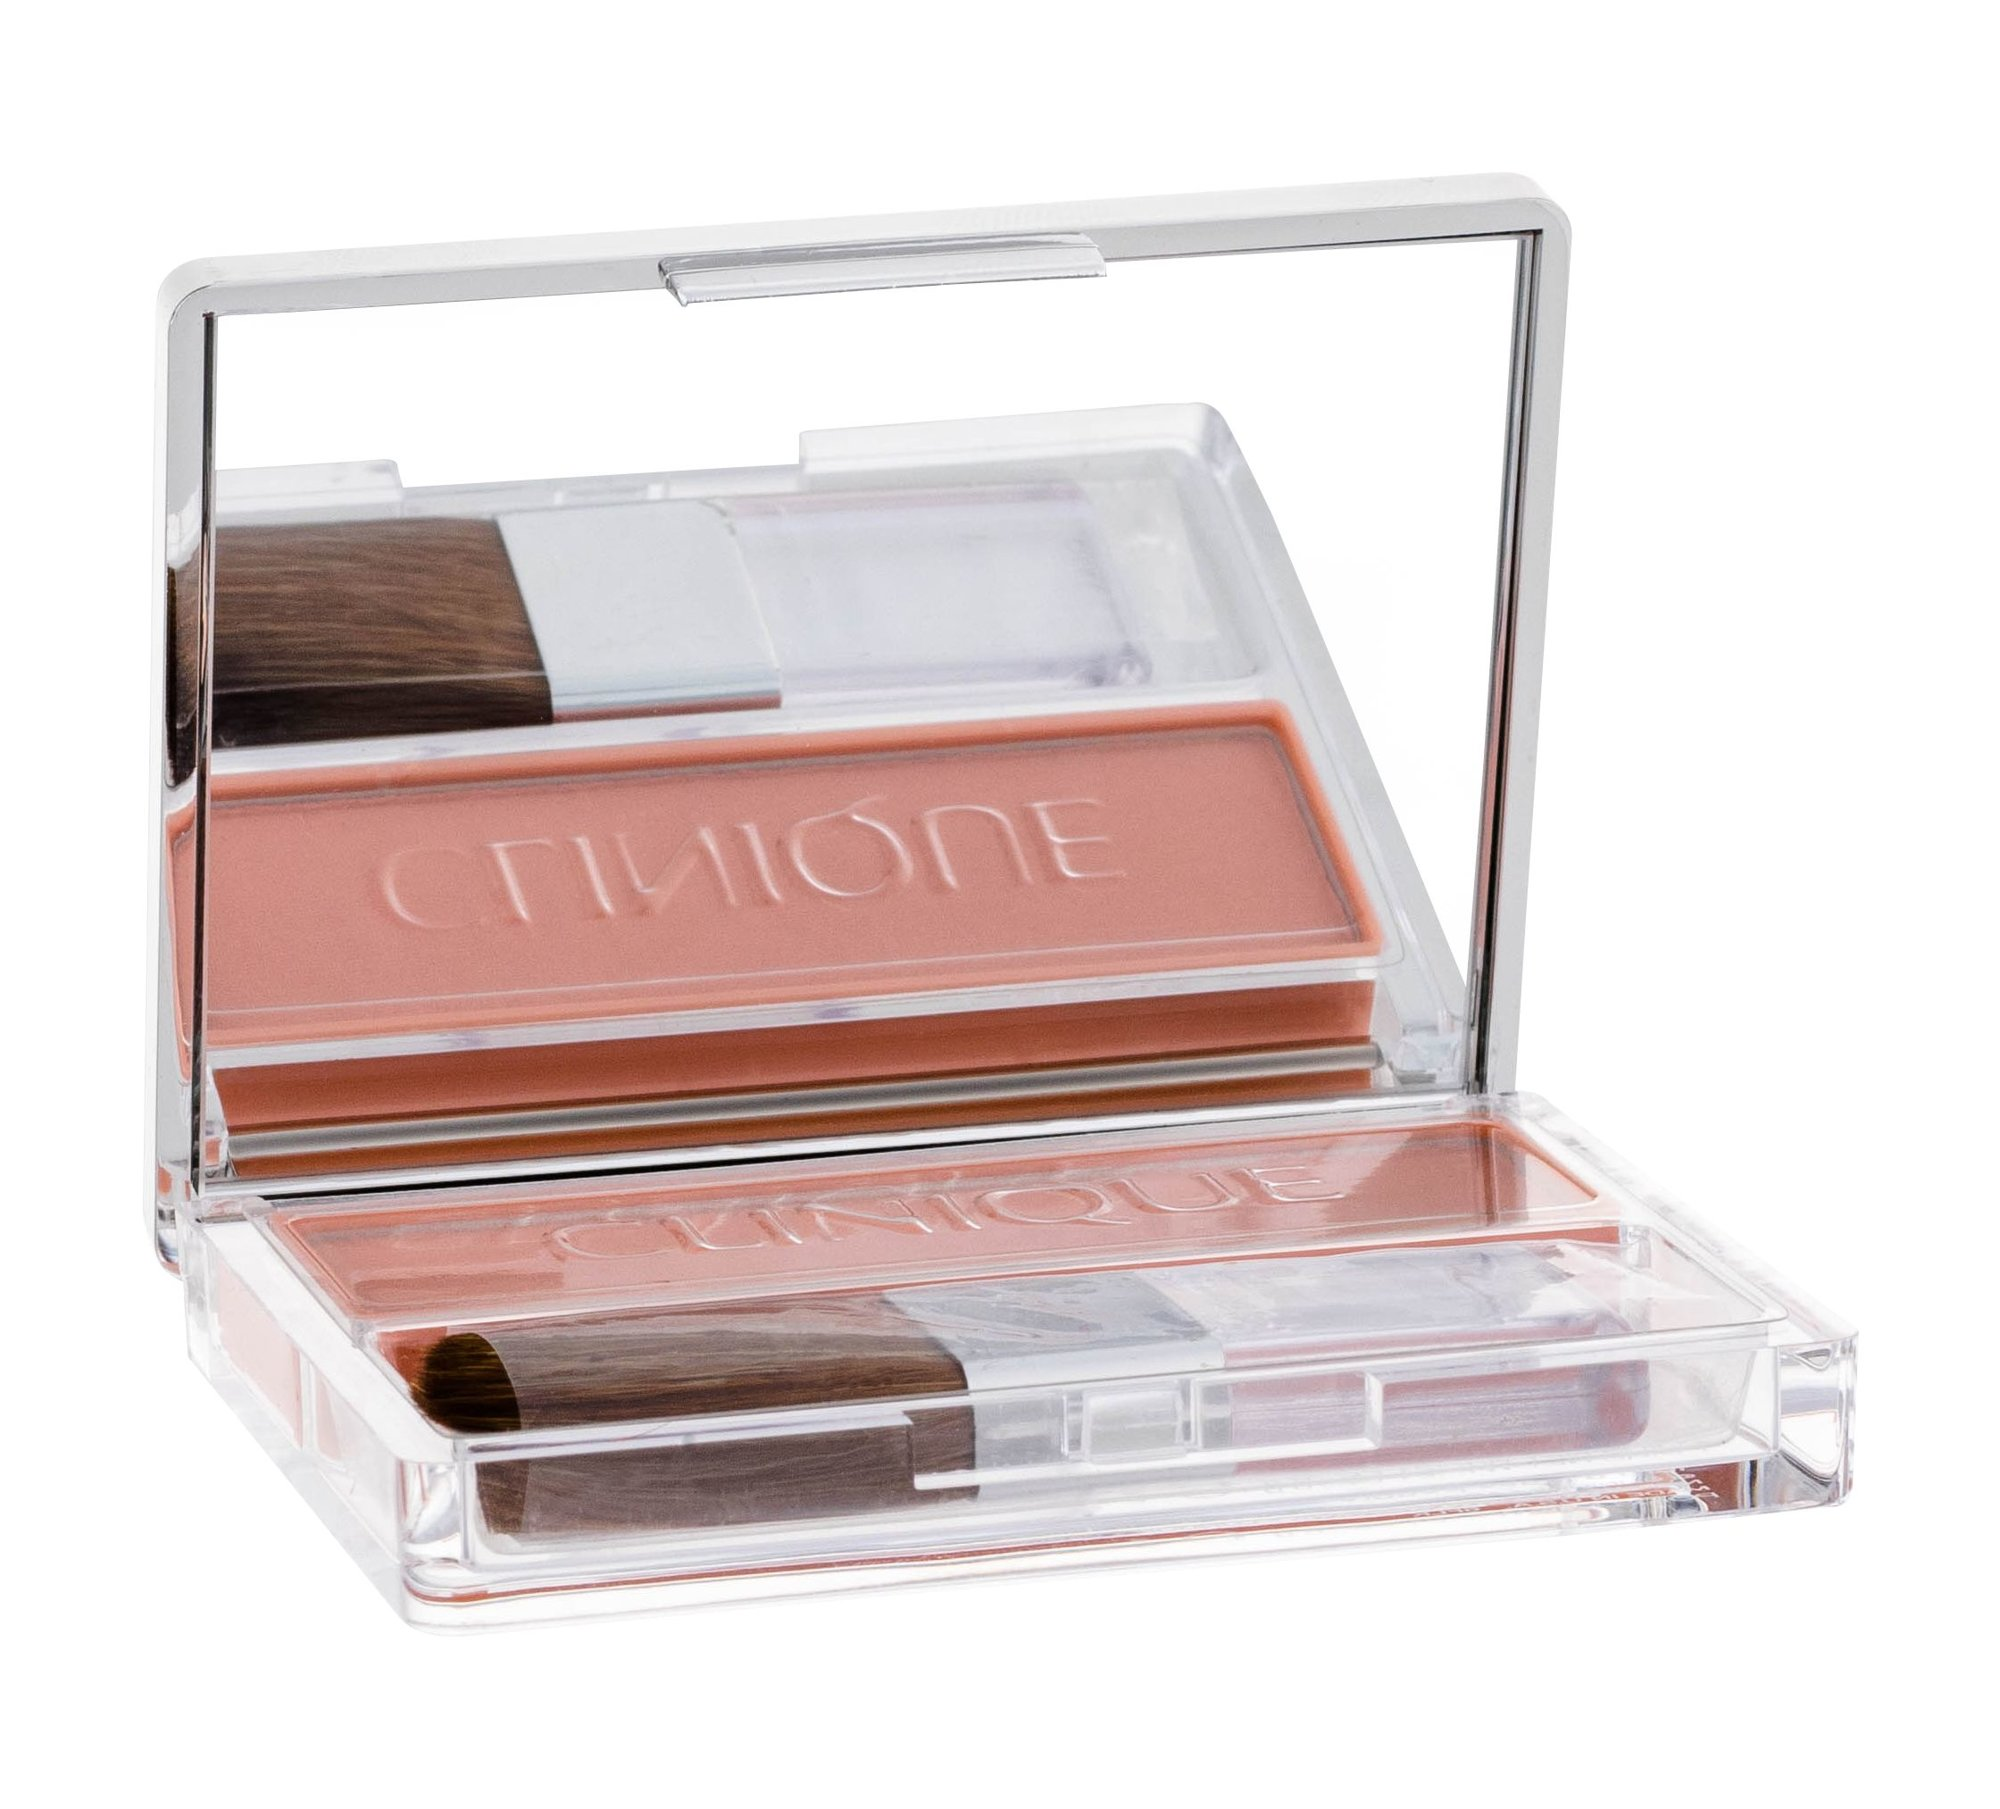 Clinique Blushing Blush Cosmetic 6ml 102 Innocent Peach